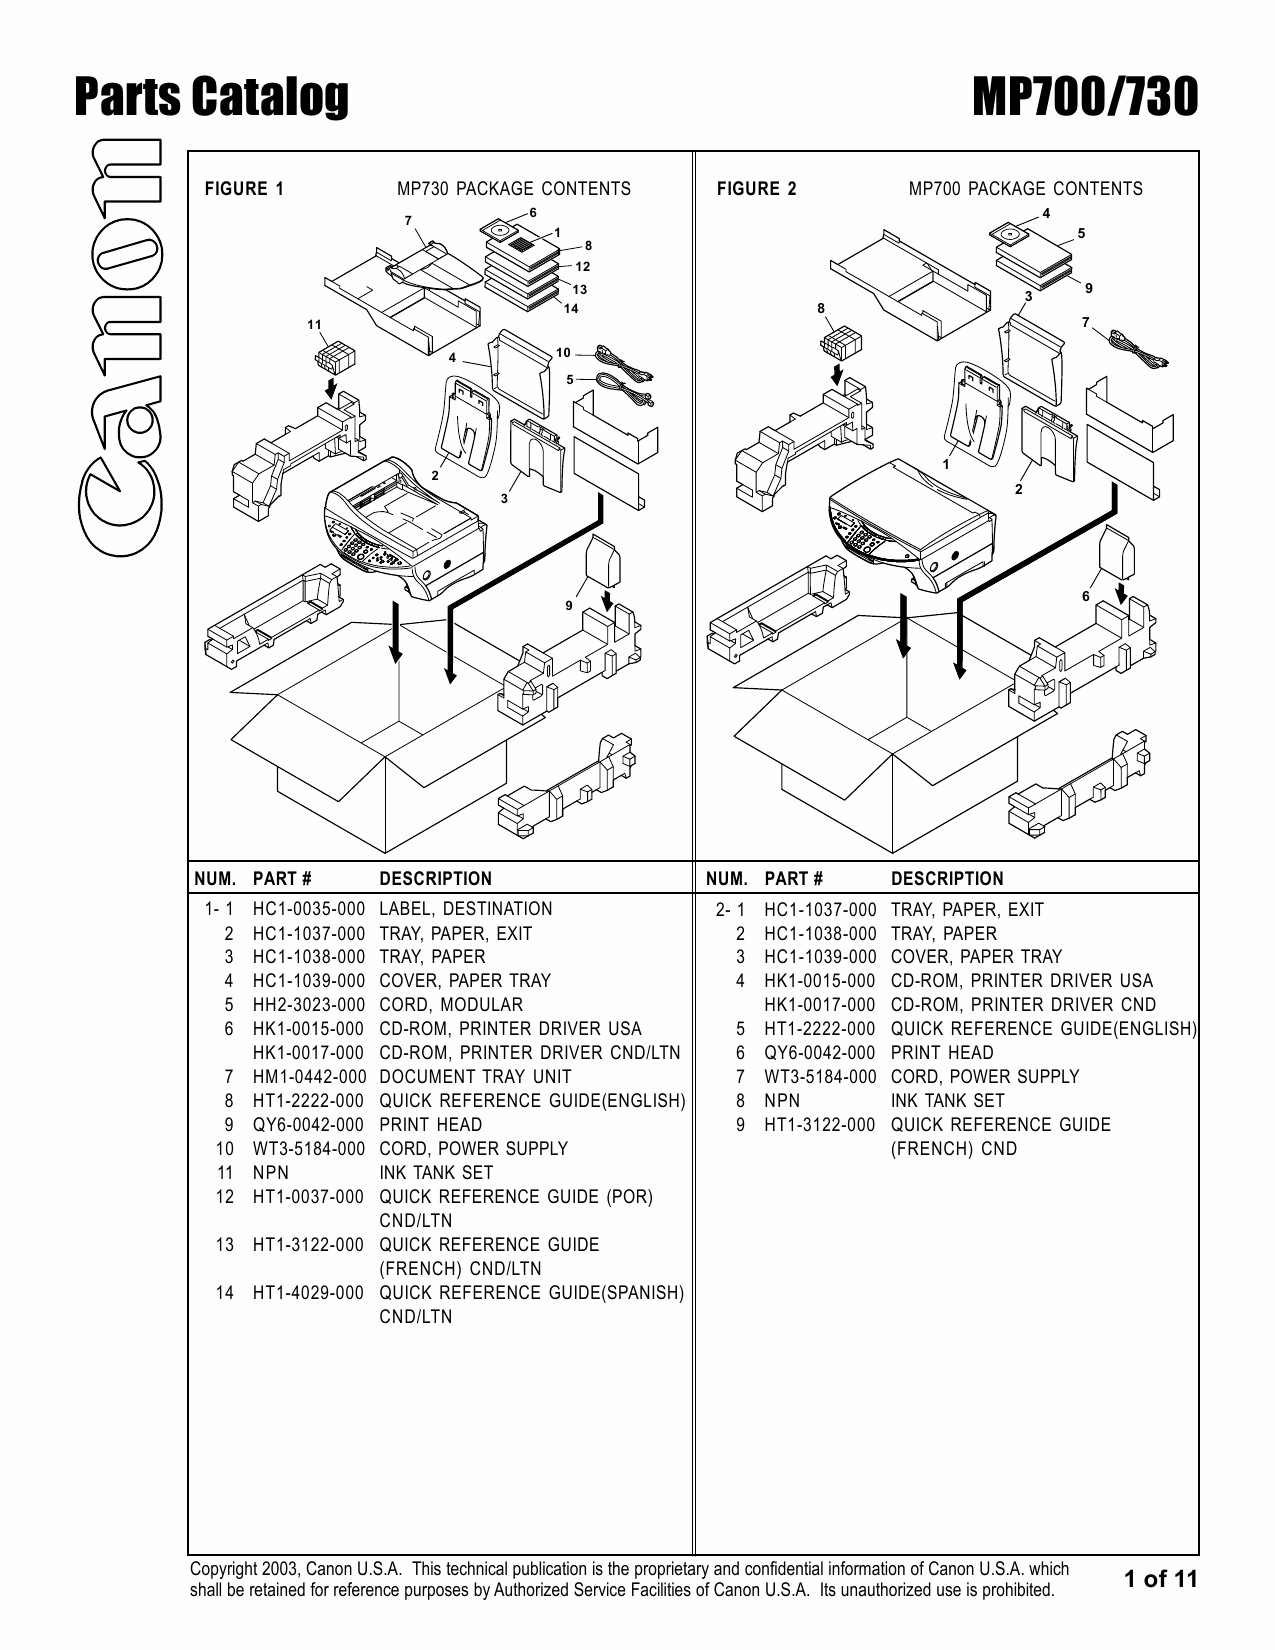 Canon PIXMA MP700 MP730 Parts Catalog Manual-2